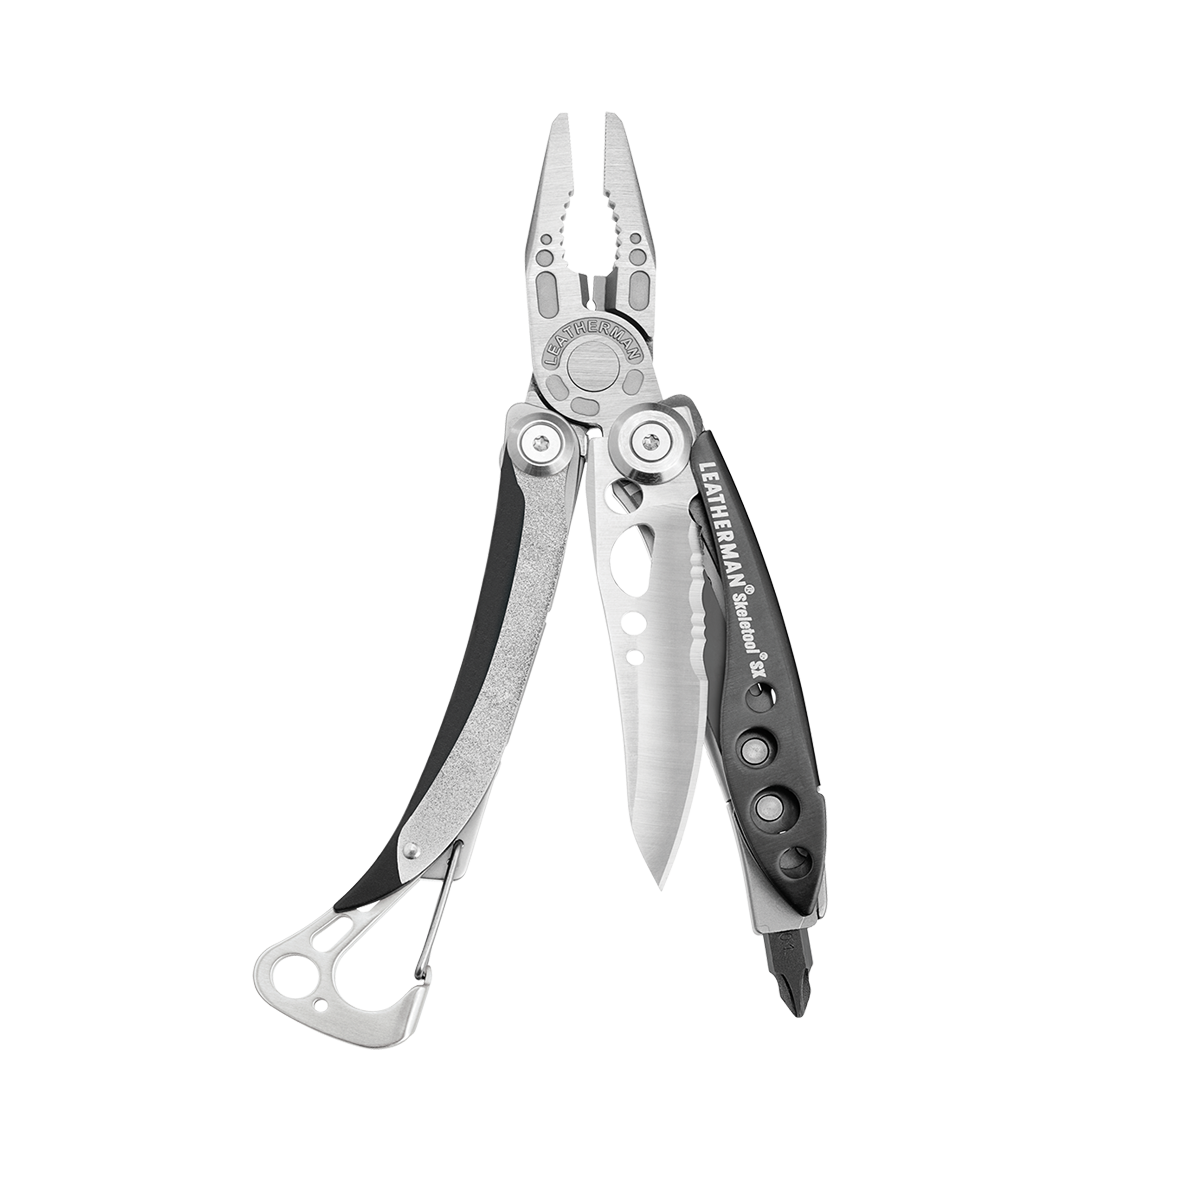 image transparent download Clip plyers spring loaded. Skeletool sx in snowboard